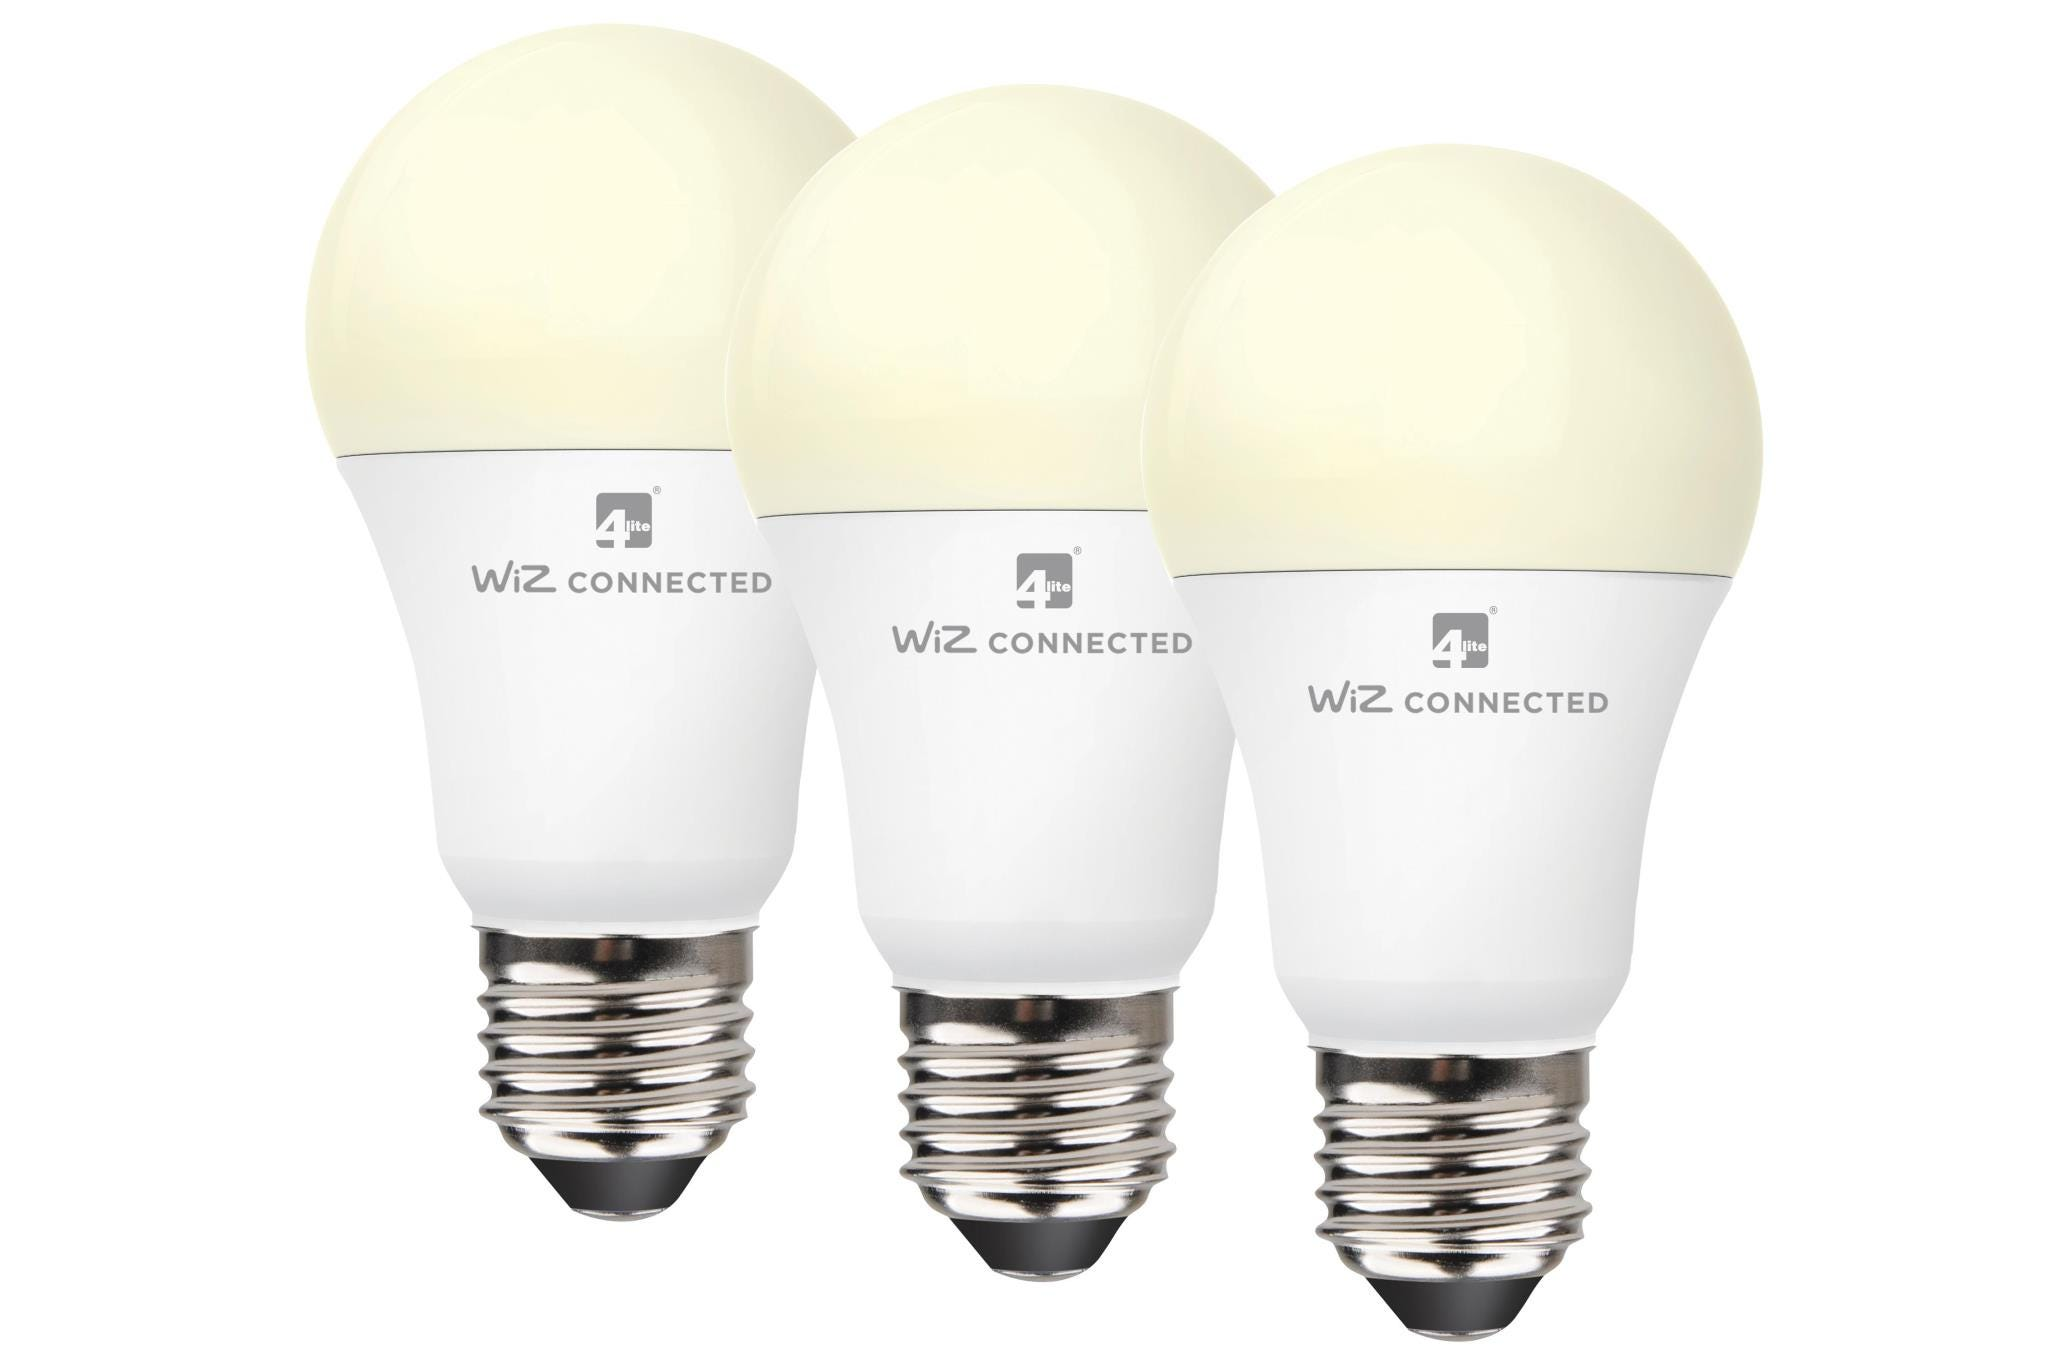 4lite WiZ Connected A60 LED Smart Bulb White Dimmable WiFi E27 Screw Triple Pack